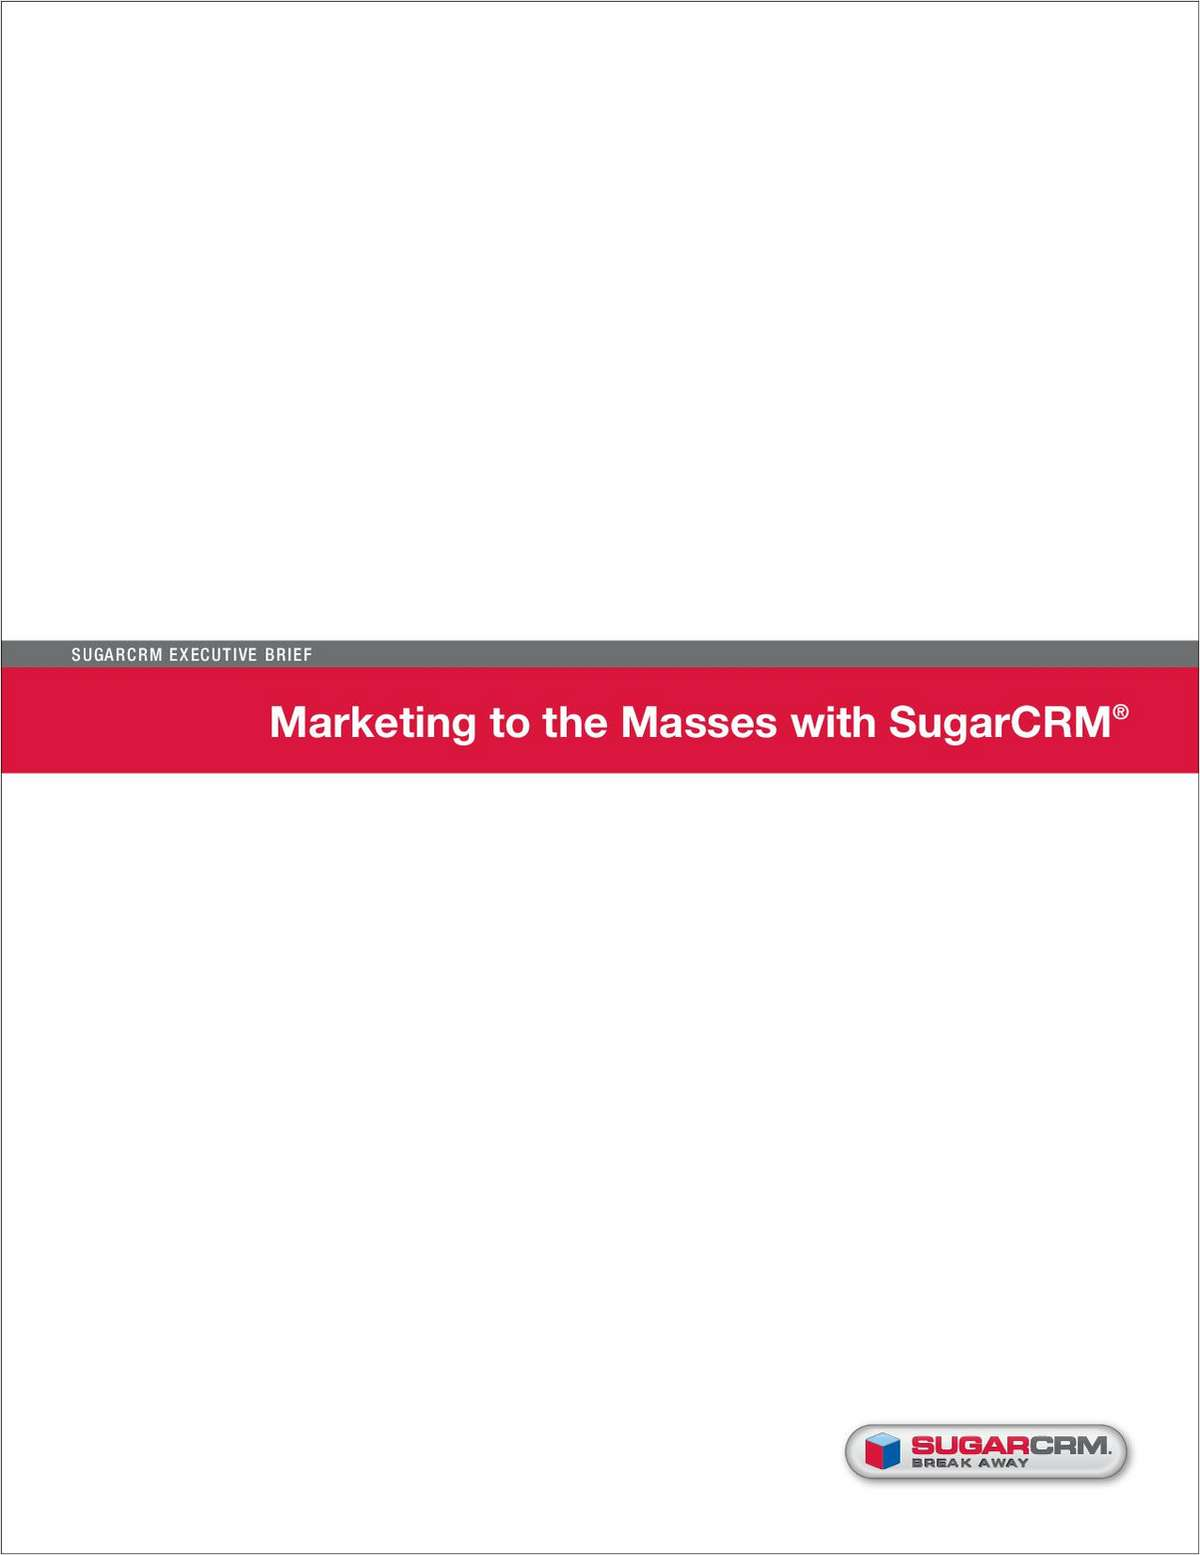 Marketing to the Masses with SugarCRM